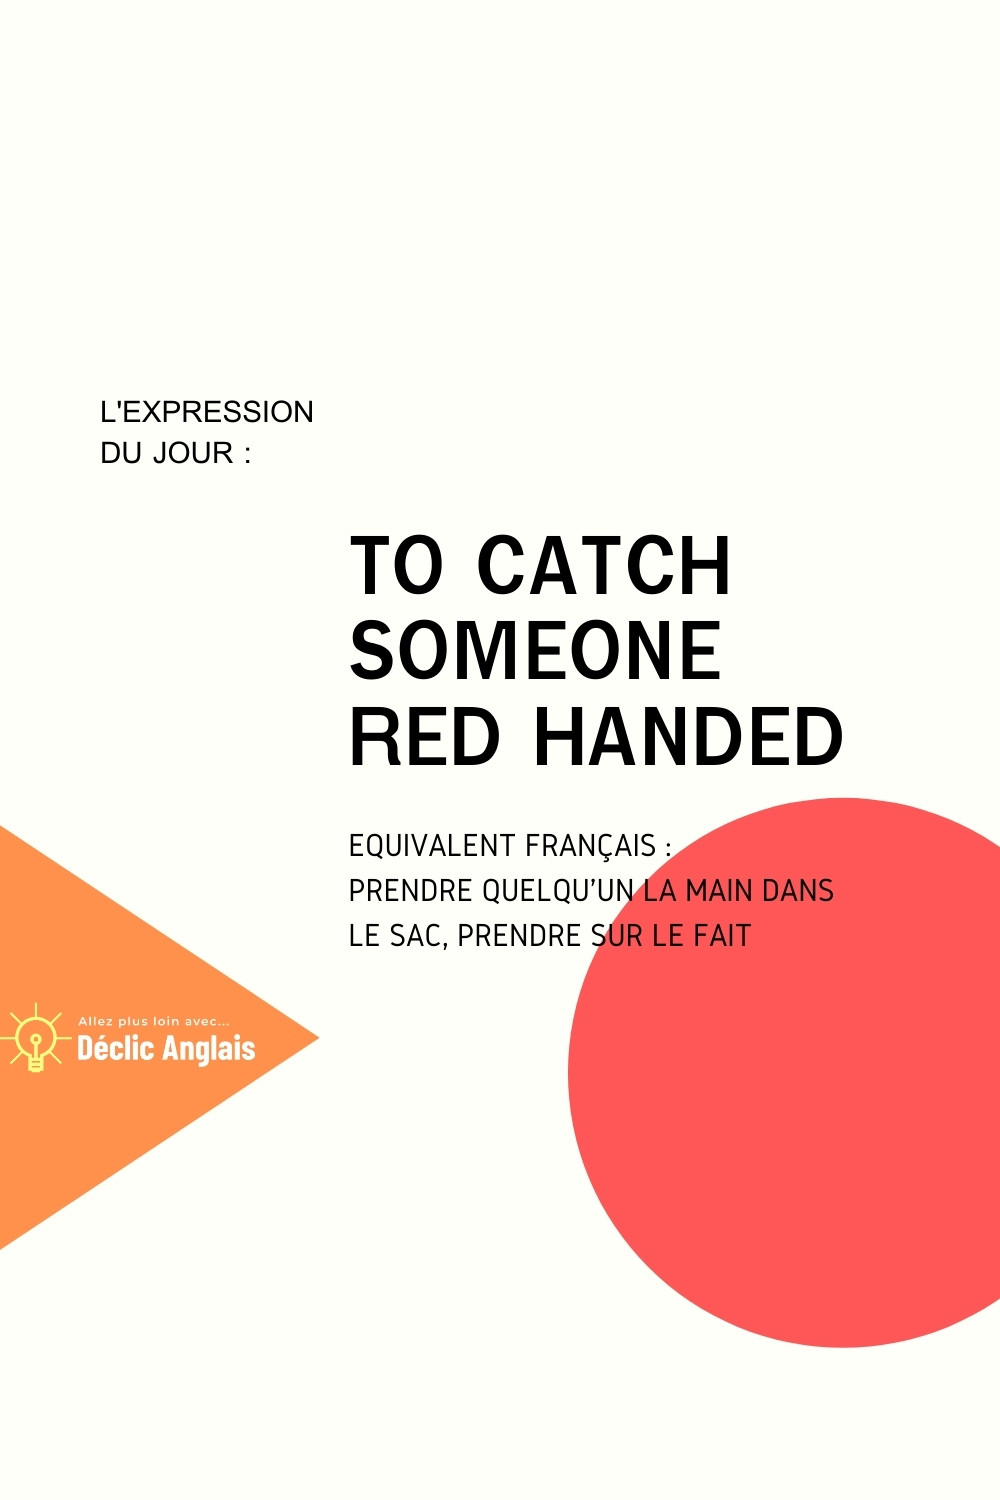 English expression to catch someone red handed explained in French